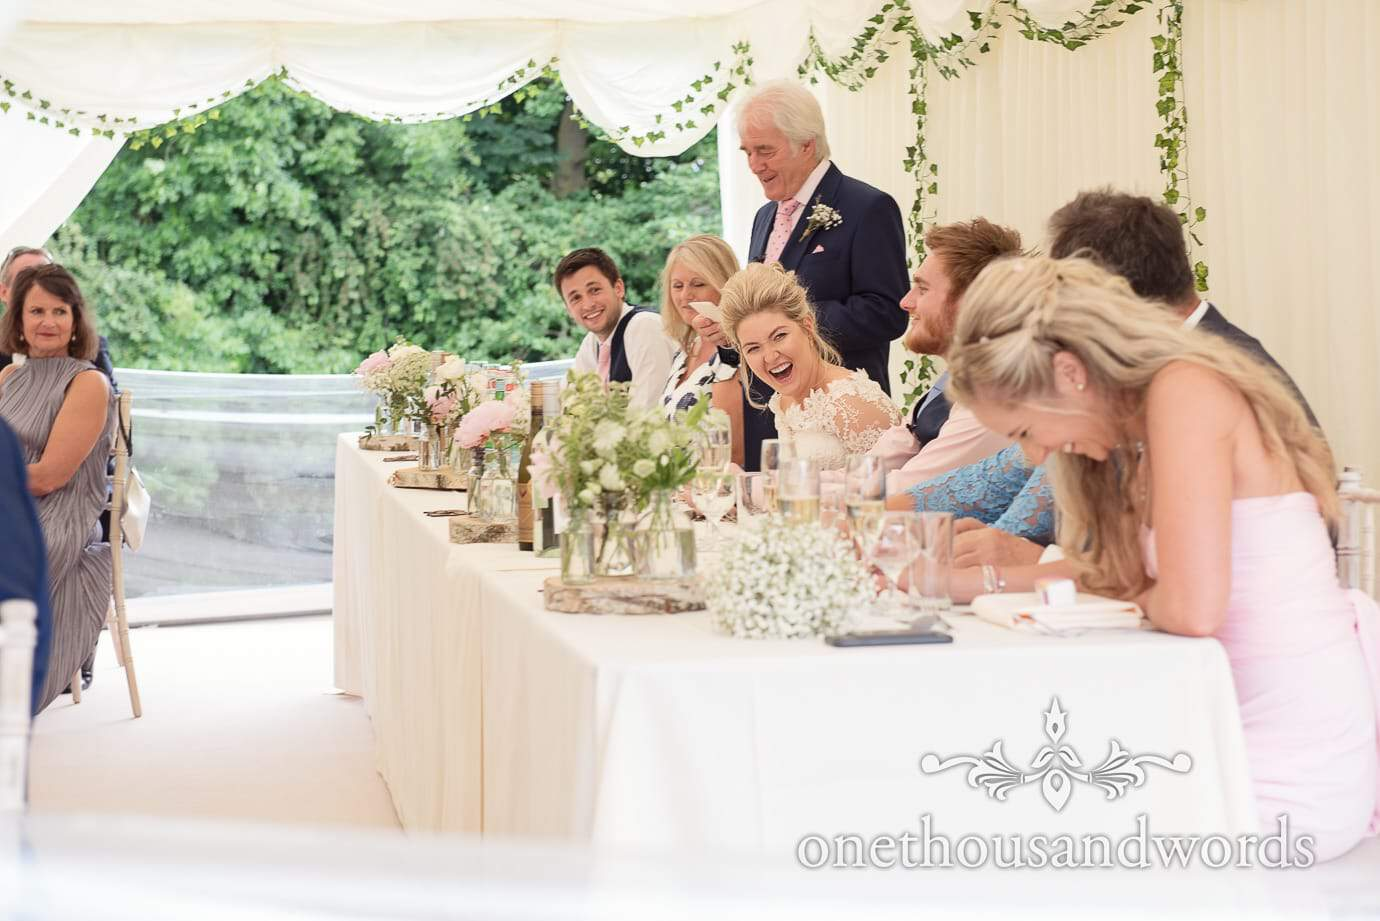 Bride laughs on country wedding marquee top table to fathers wedding speech